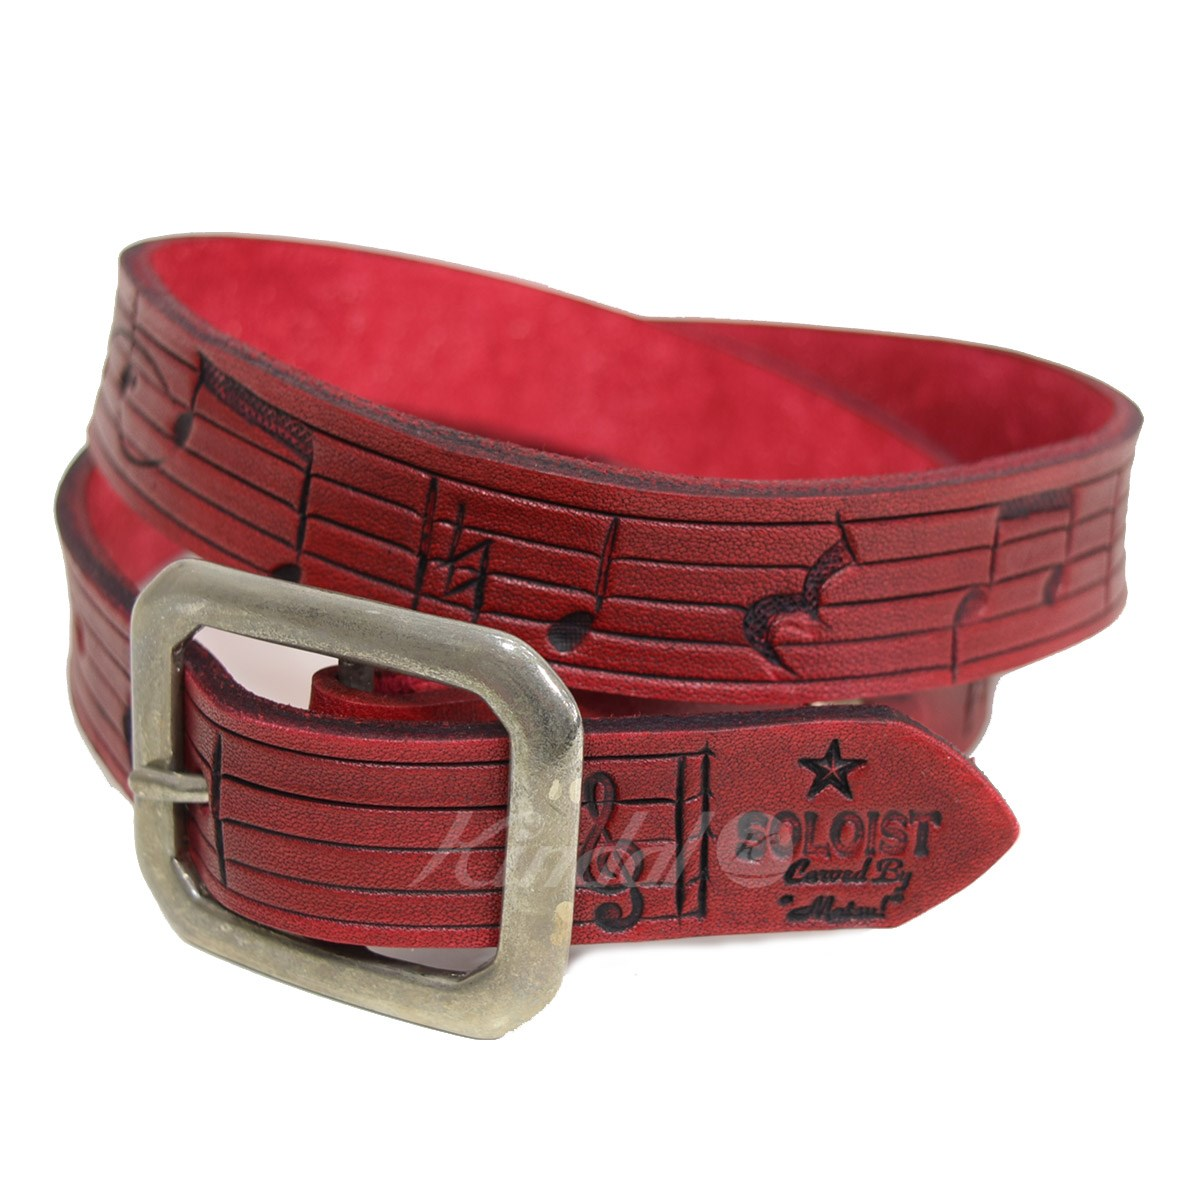 【中古】TAKAHIROMIYASHITA TheSoloIst. leadbelly belt レッドベリーベルト 2018SS 【送料無料】 【003589】 【KIND1641】